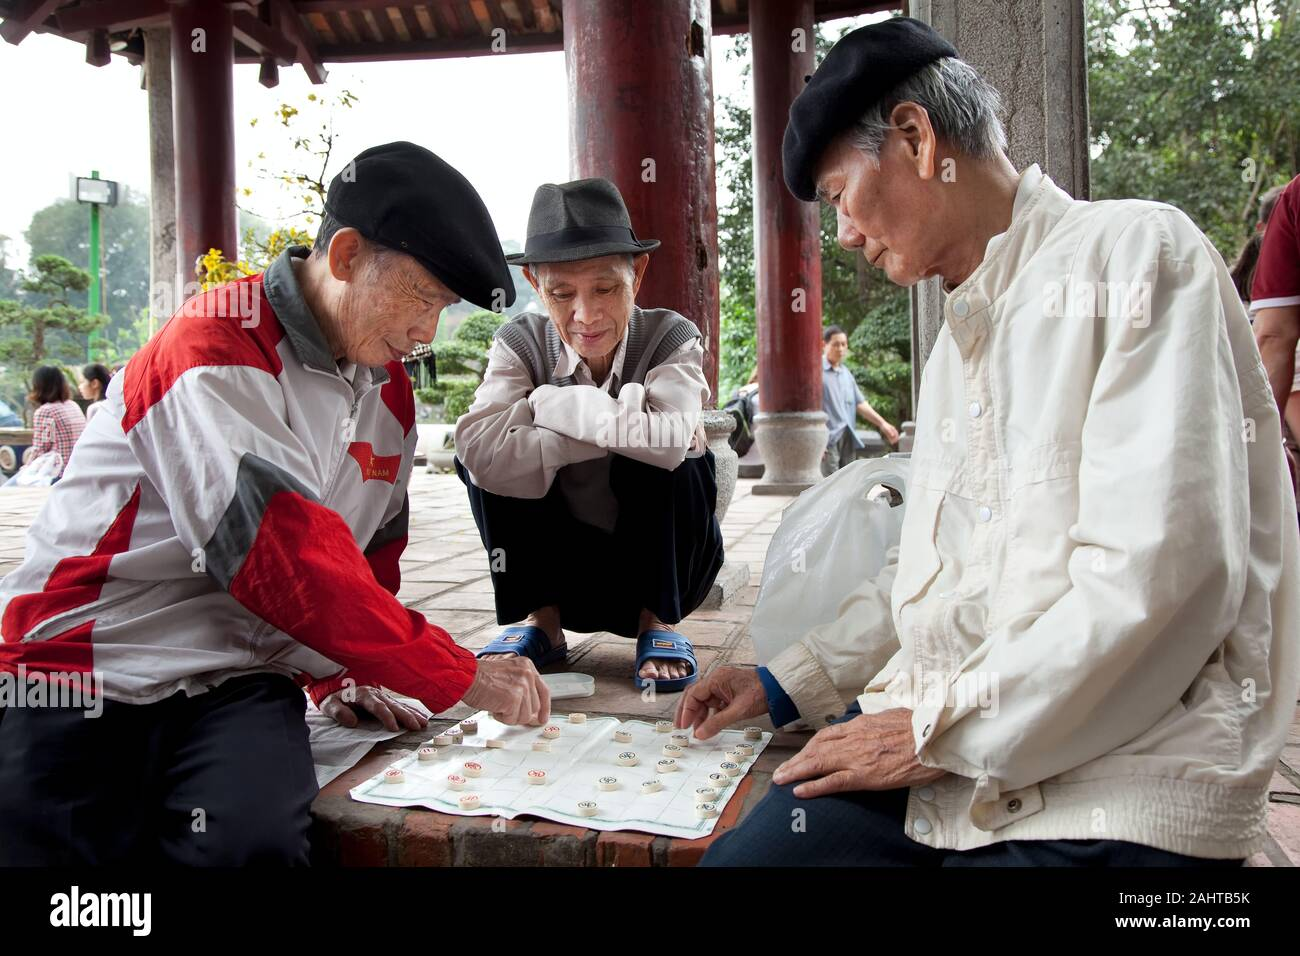 3 elderly people play a board game outside under a canopy and have a lot of fun, Hanoi Vietnam Stock Photo